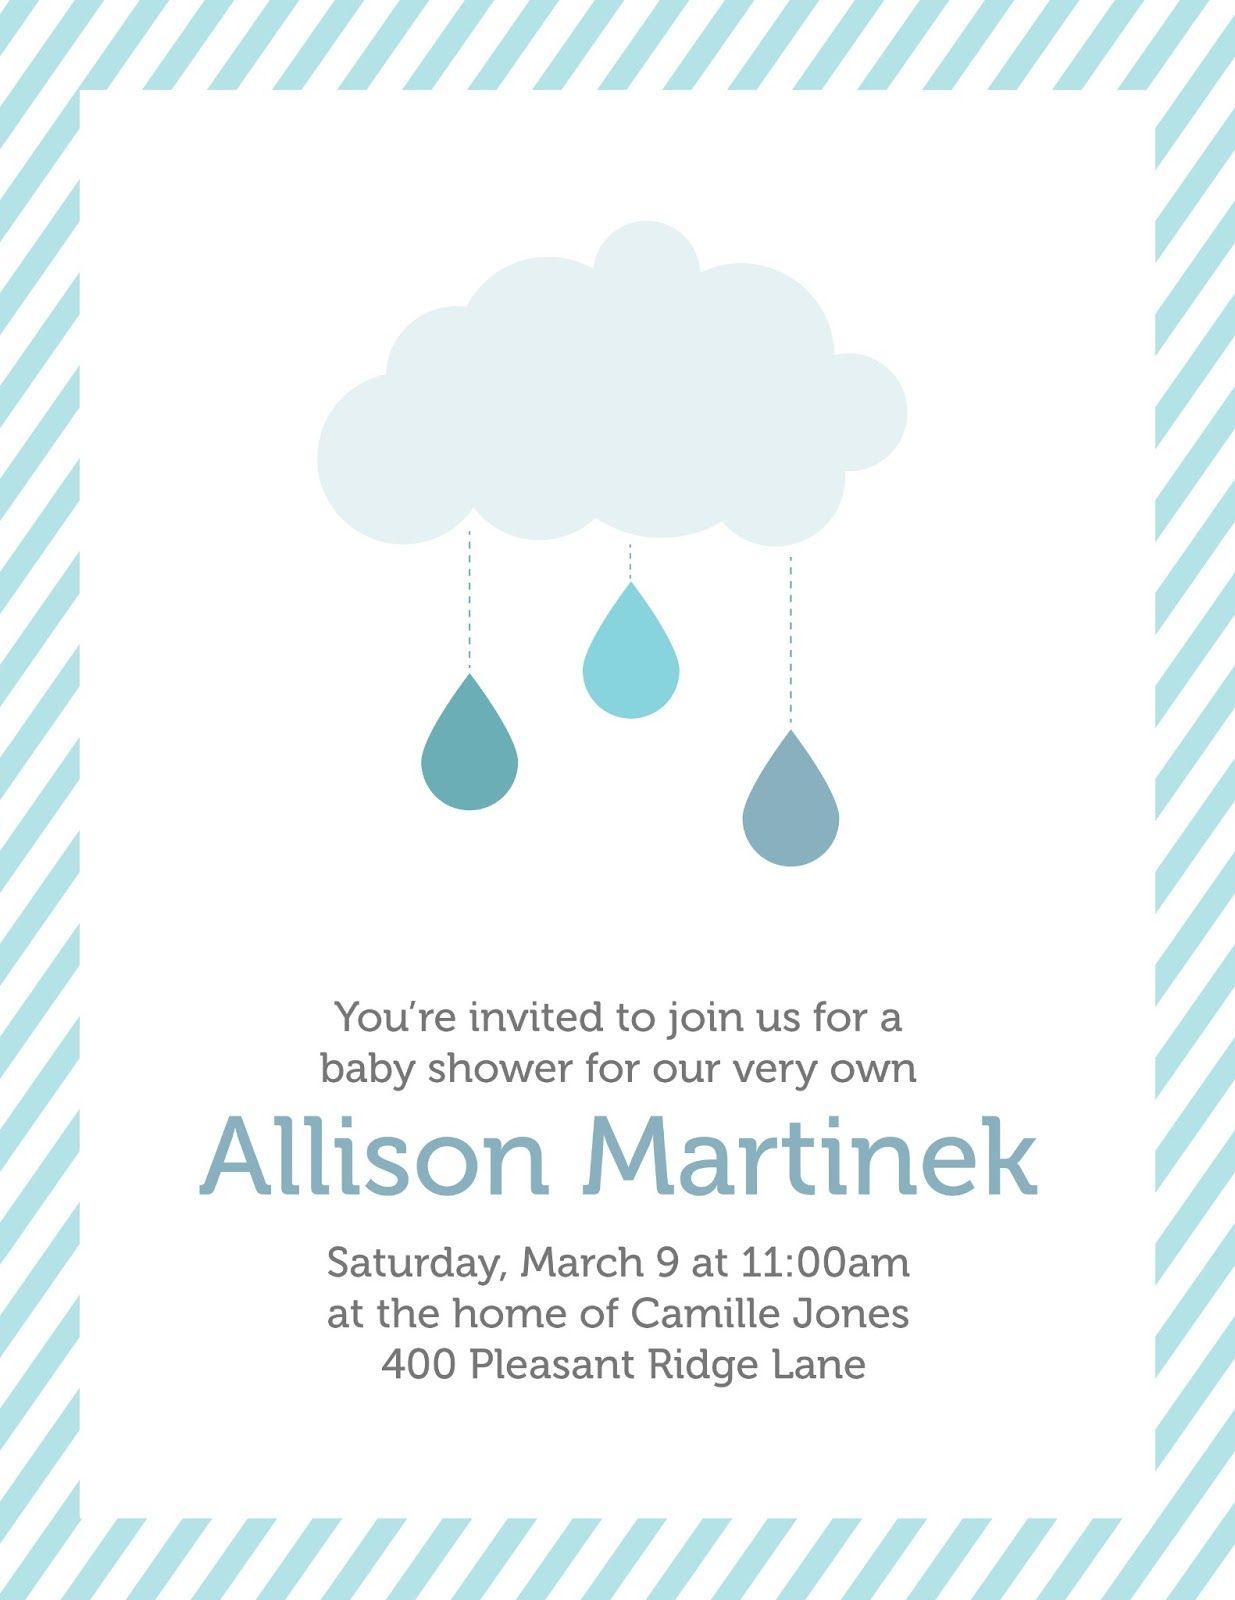 Baby shower invitations cloud theme cloud decoration with baby shower invitations cloud theme cloud decoration with paper rain drops for filmwisefo